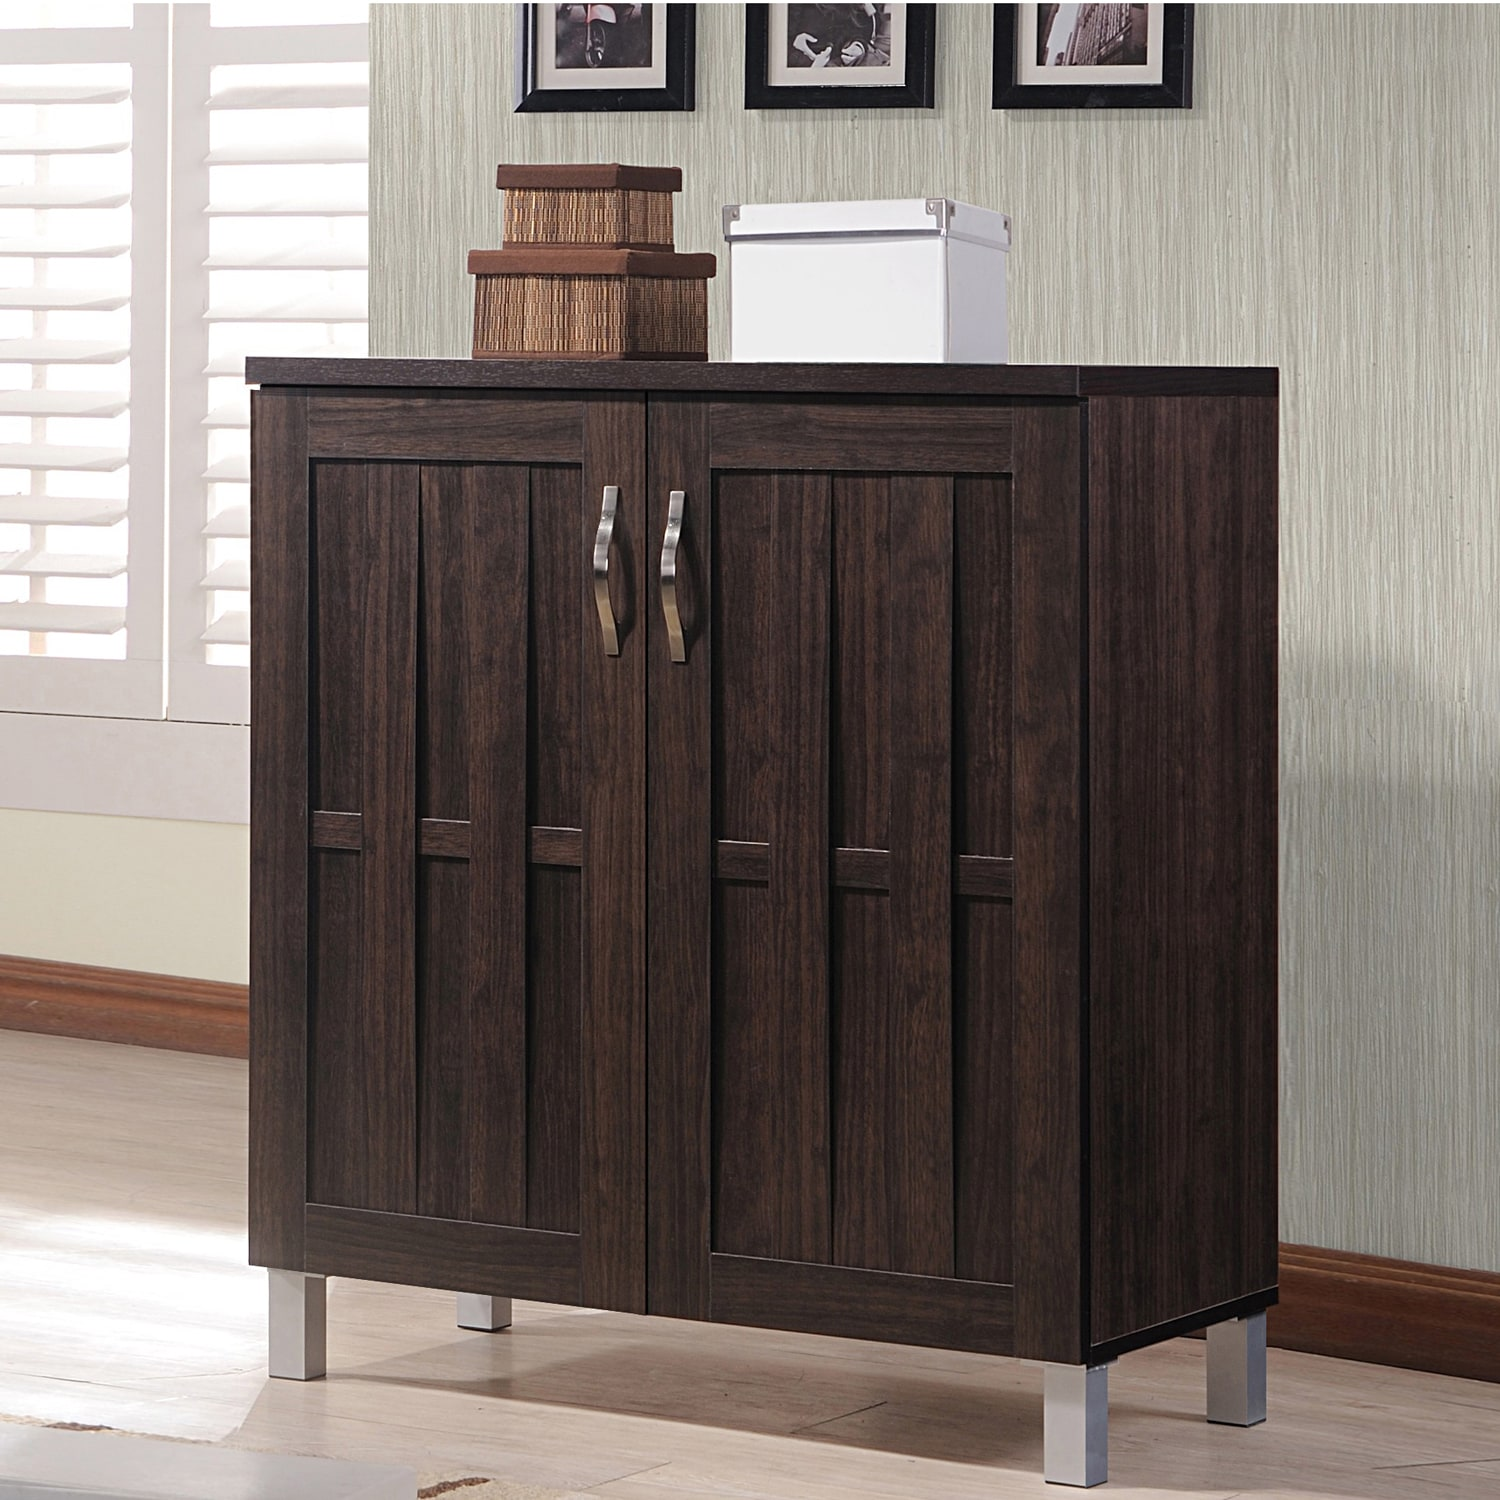 Modern Foyer Cabinet : Modern espresso storage cabinet contemporary natural look